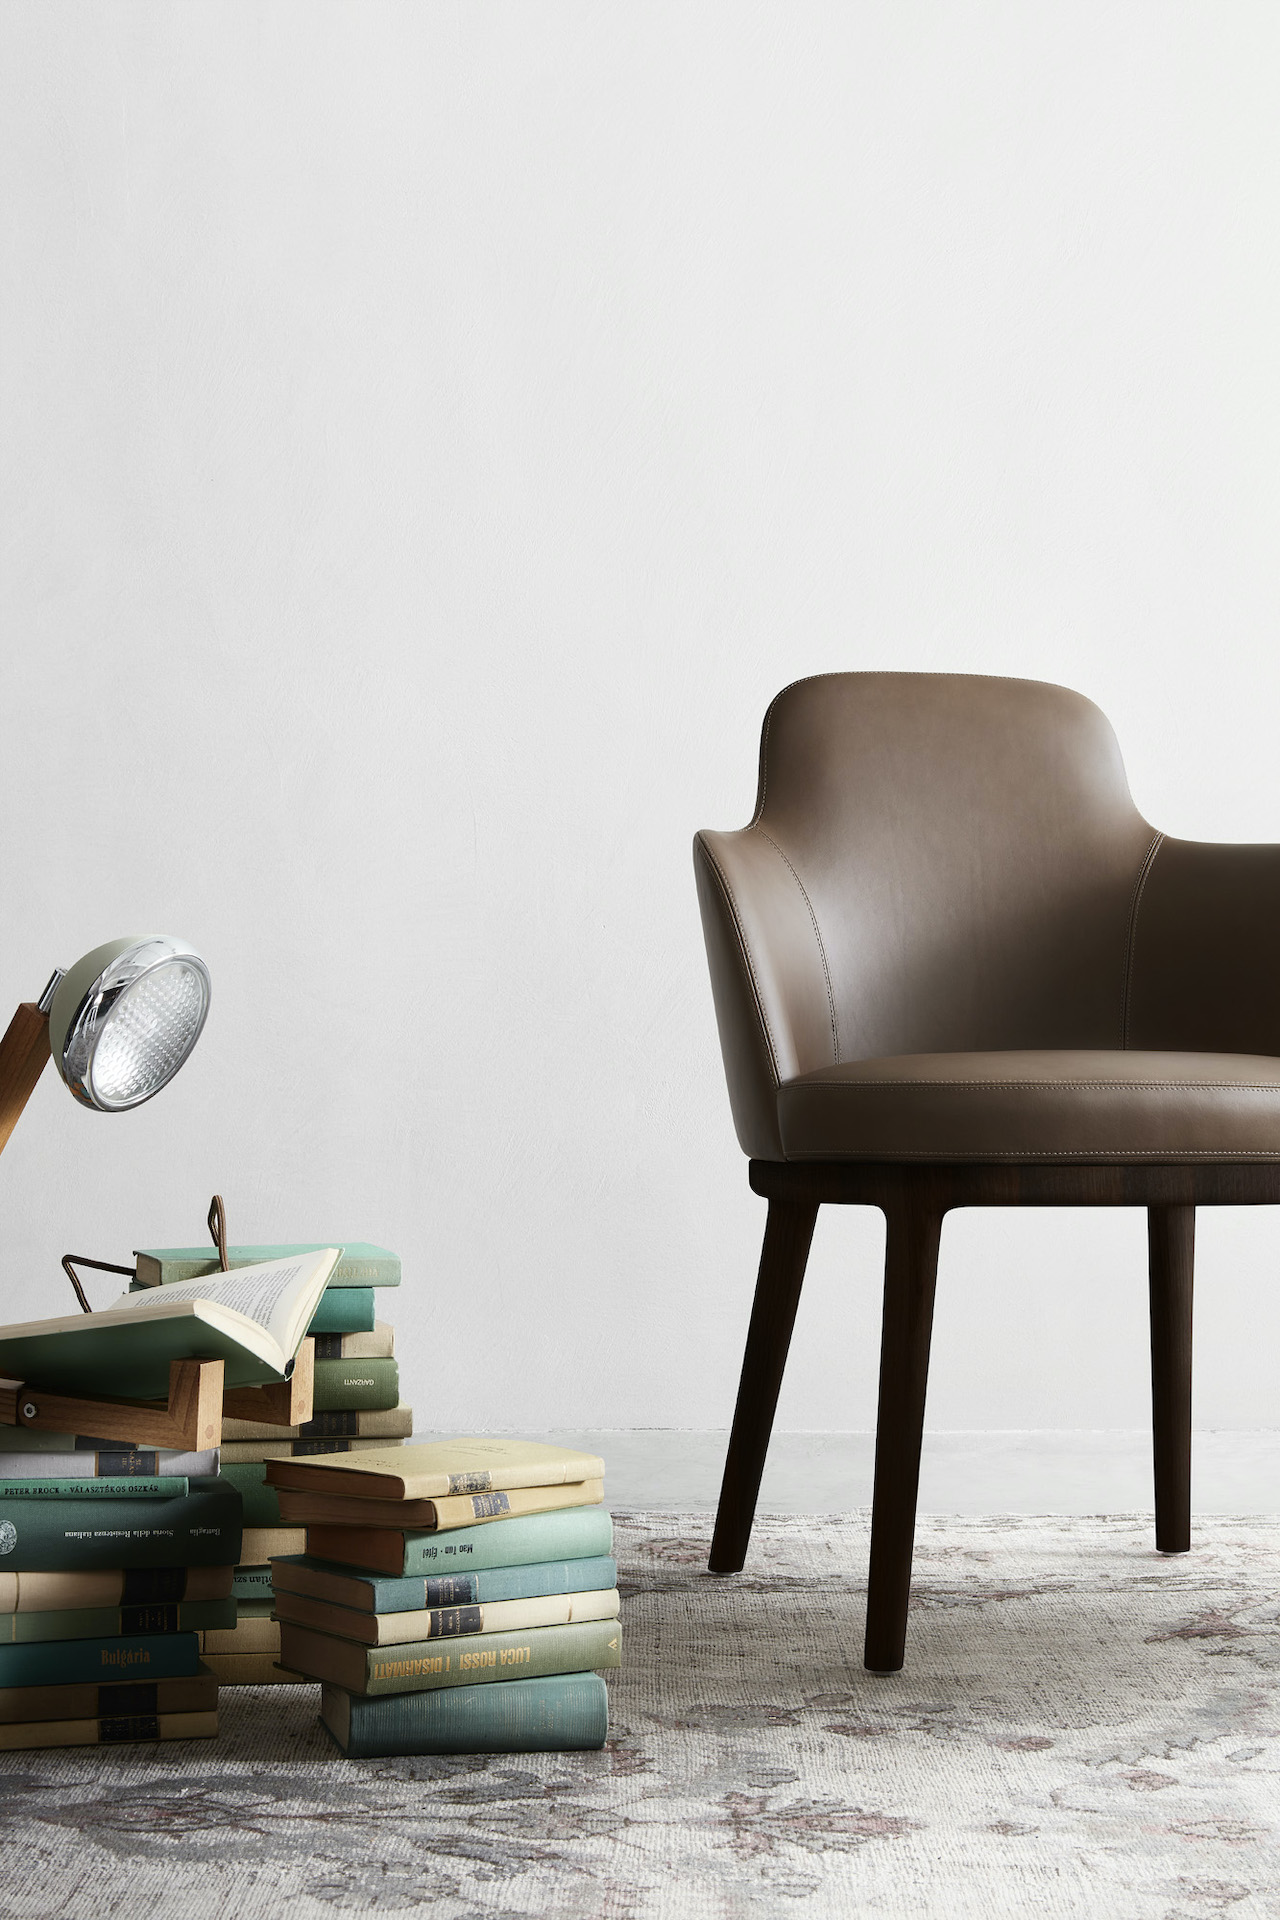 Collection of seating Lucylle, design Roberto Lazzeroni 2020, Lema